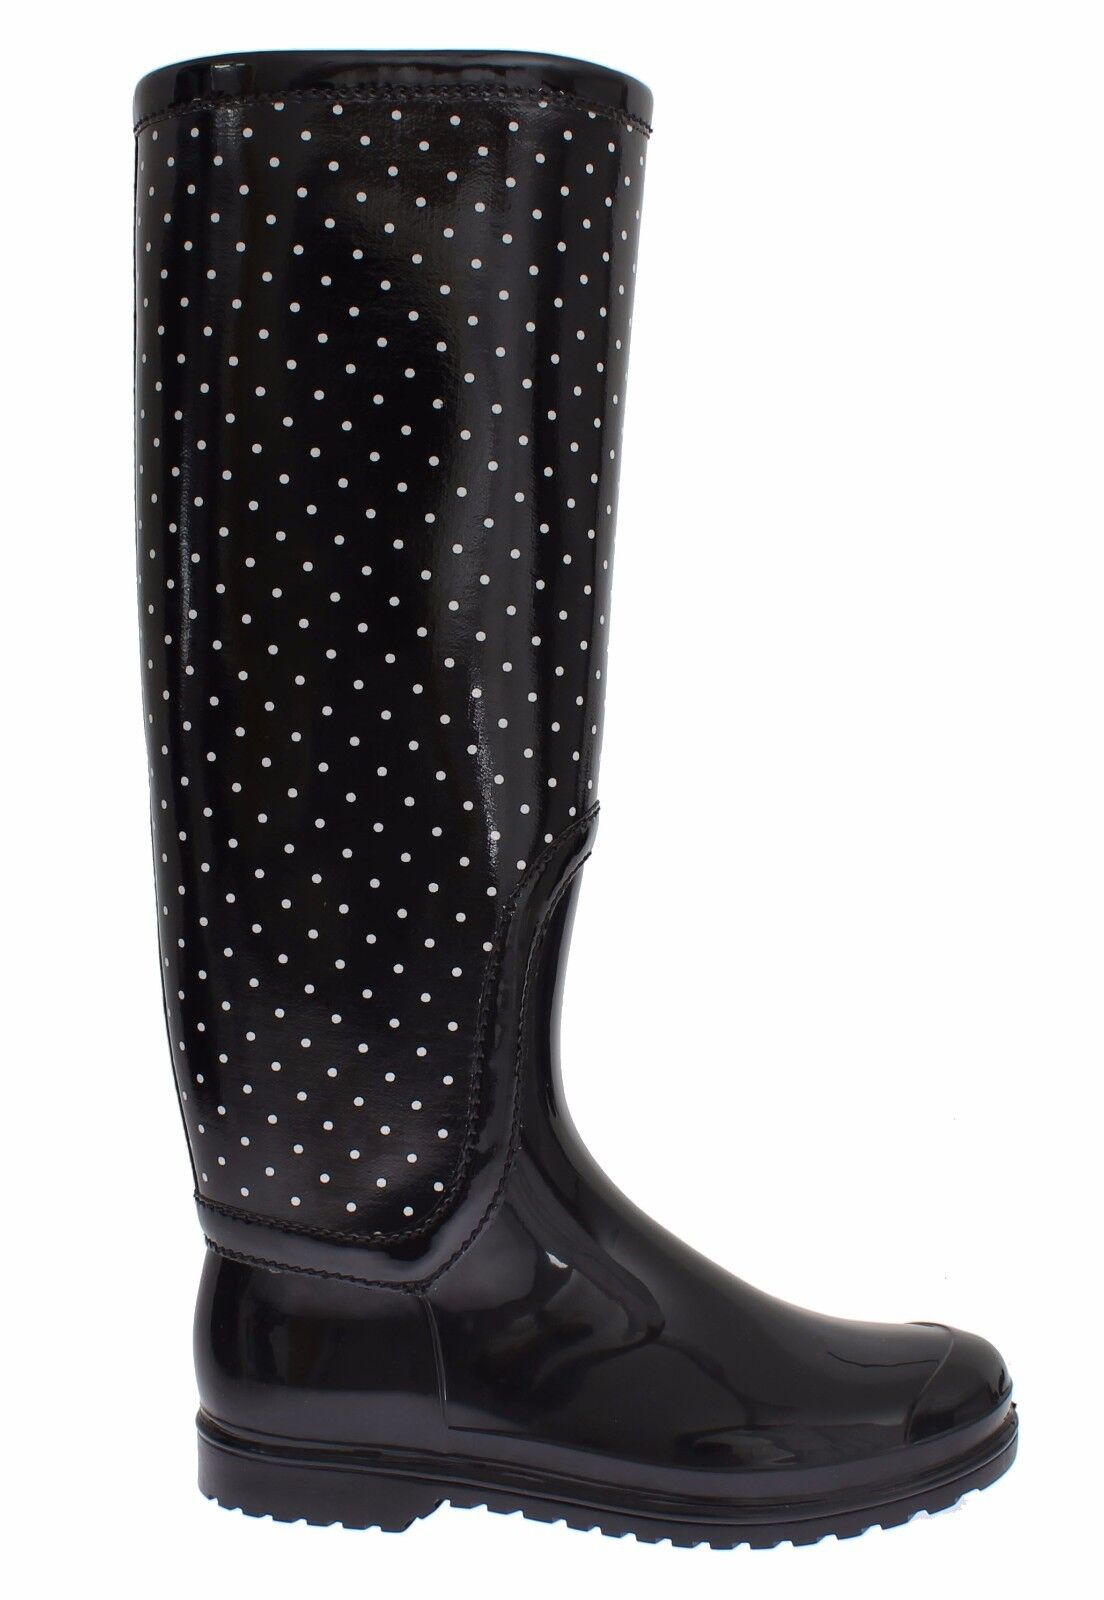 NWT DOLCE & GABBANA Boots Shoes Womens Black Polka Rubber Rain Knee EU40 / US9